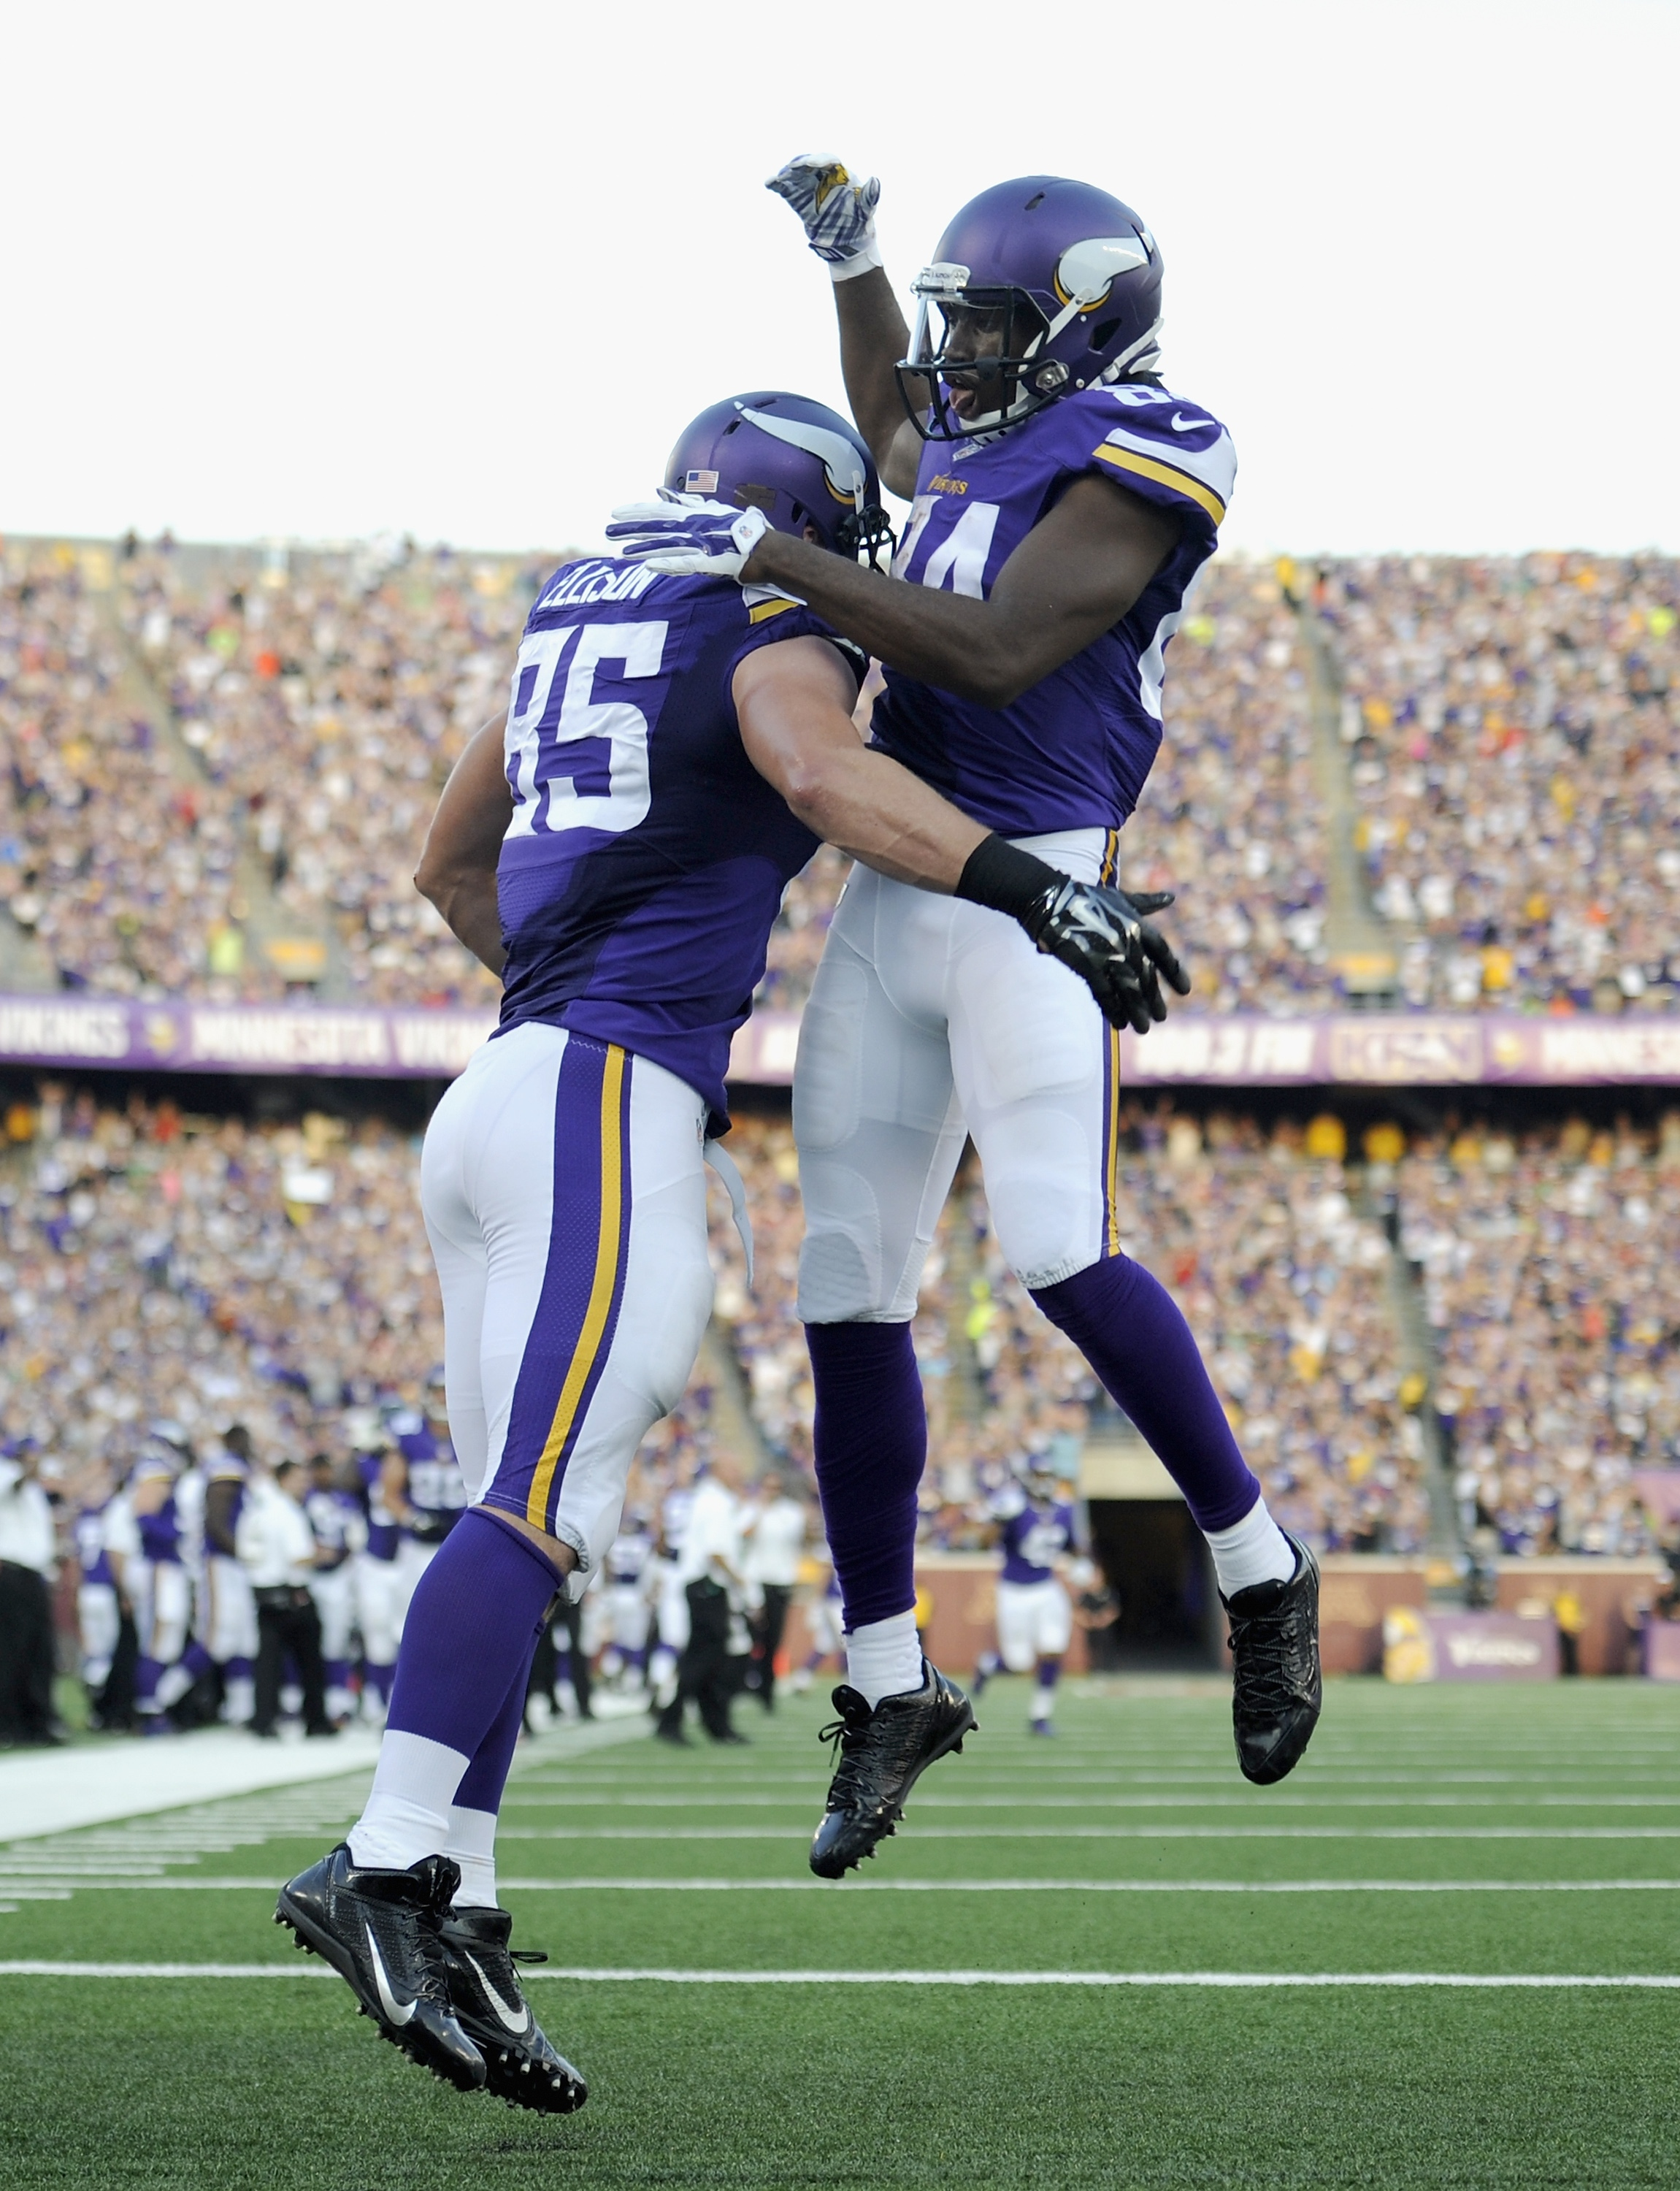 Cordarrelle Patterson, in happier times. (Photo by Hannah Foslien/Getty Images)